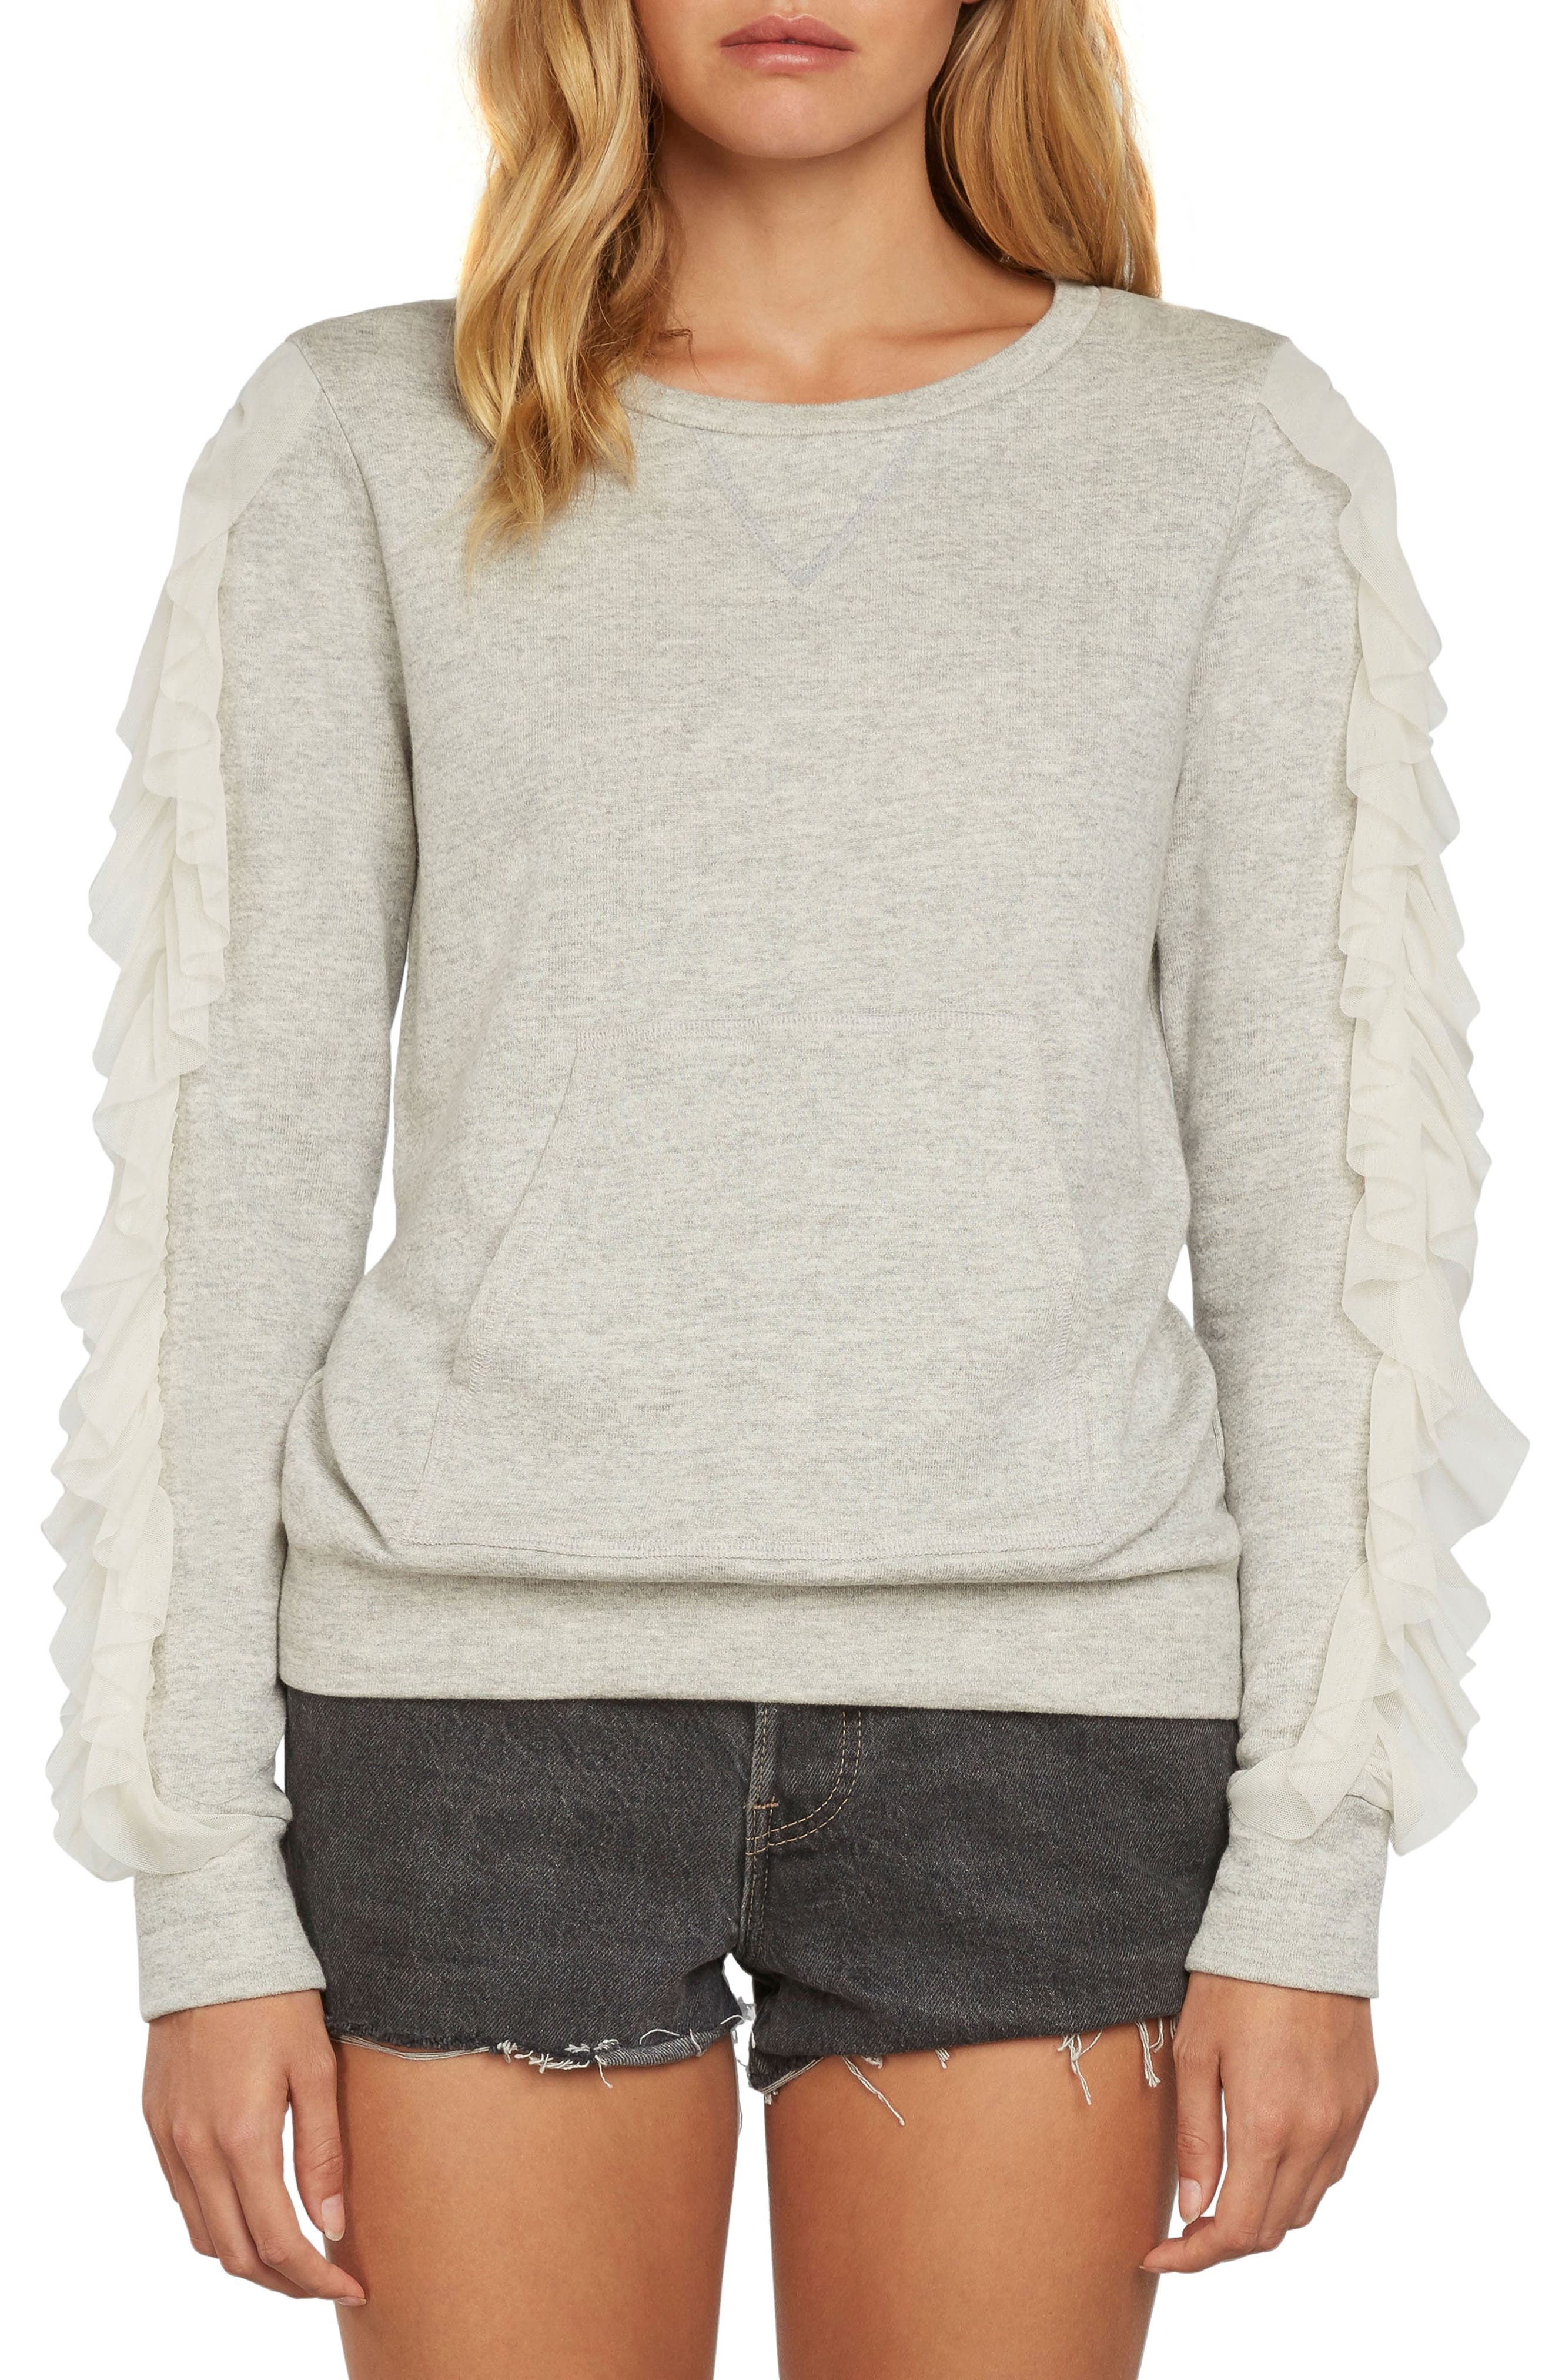 Ruffle Pullover Knit Sweatshirt,                         Main,                         color, 060